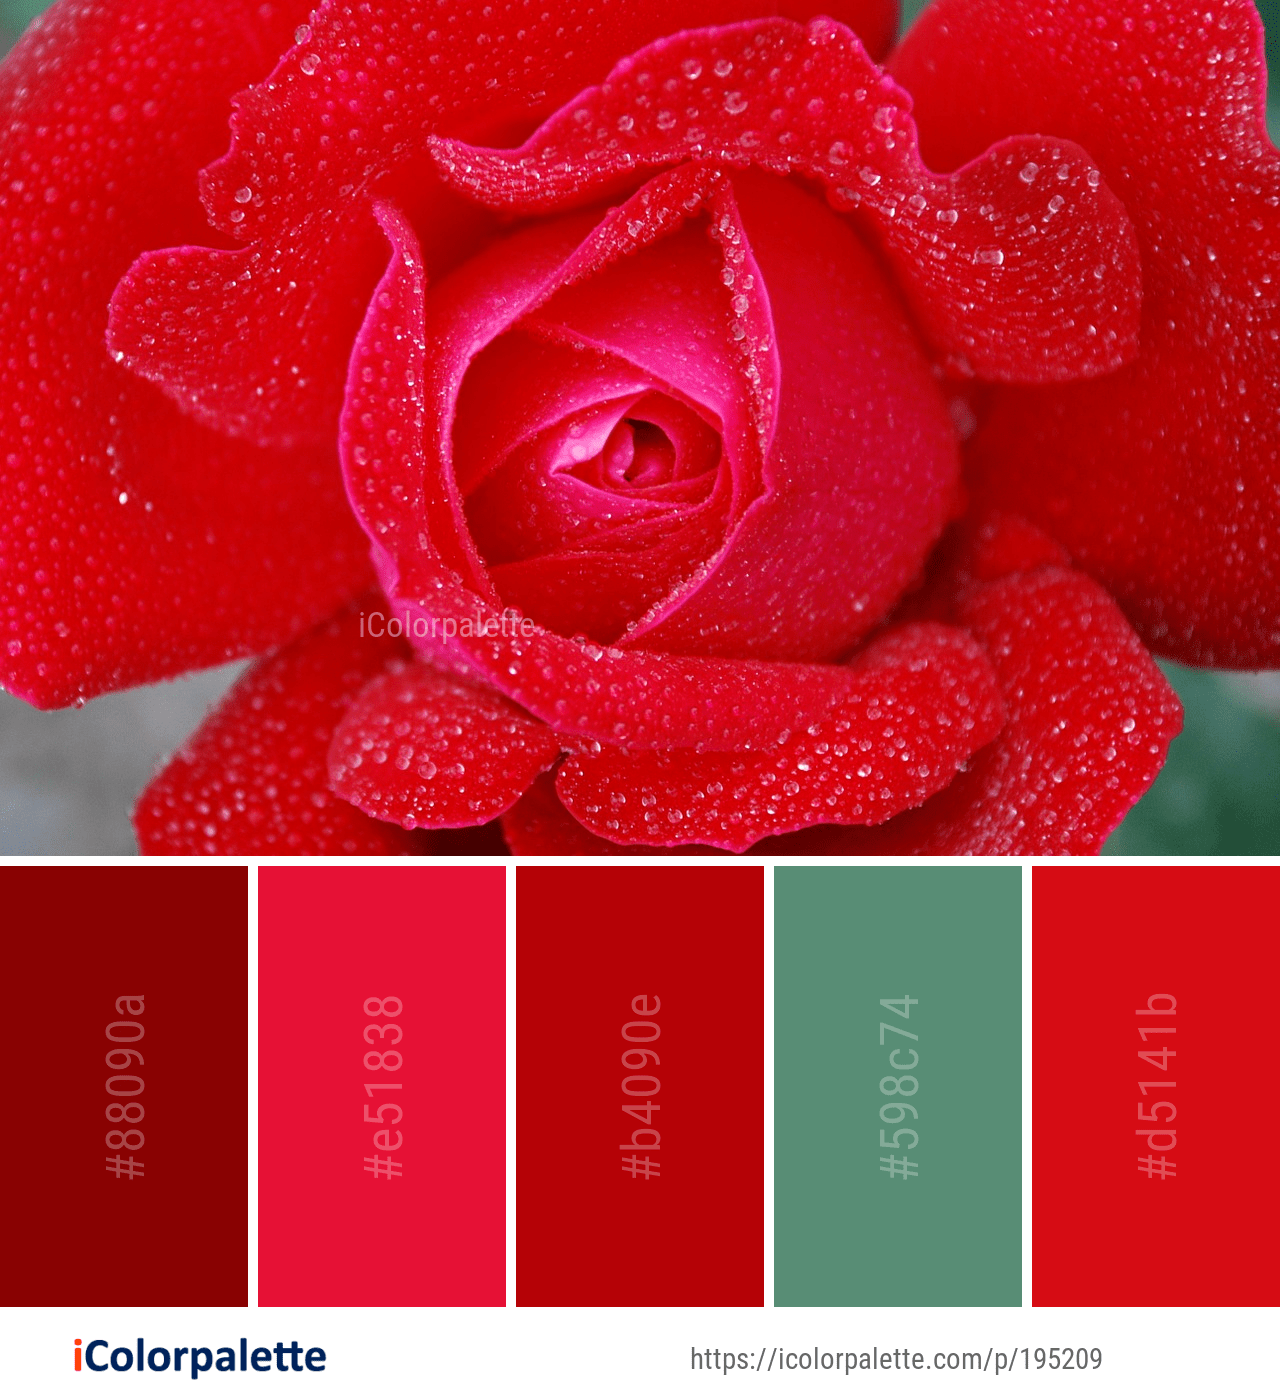 Color Palette Ideas From 9097 Flower Images Icolorpalette Color Palette Color Red Flowers